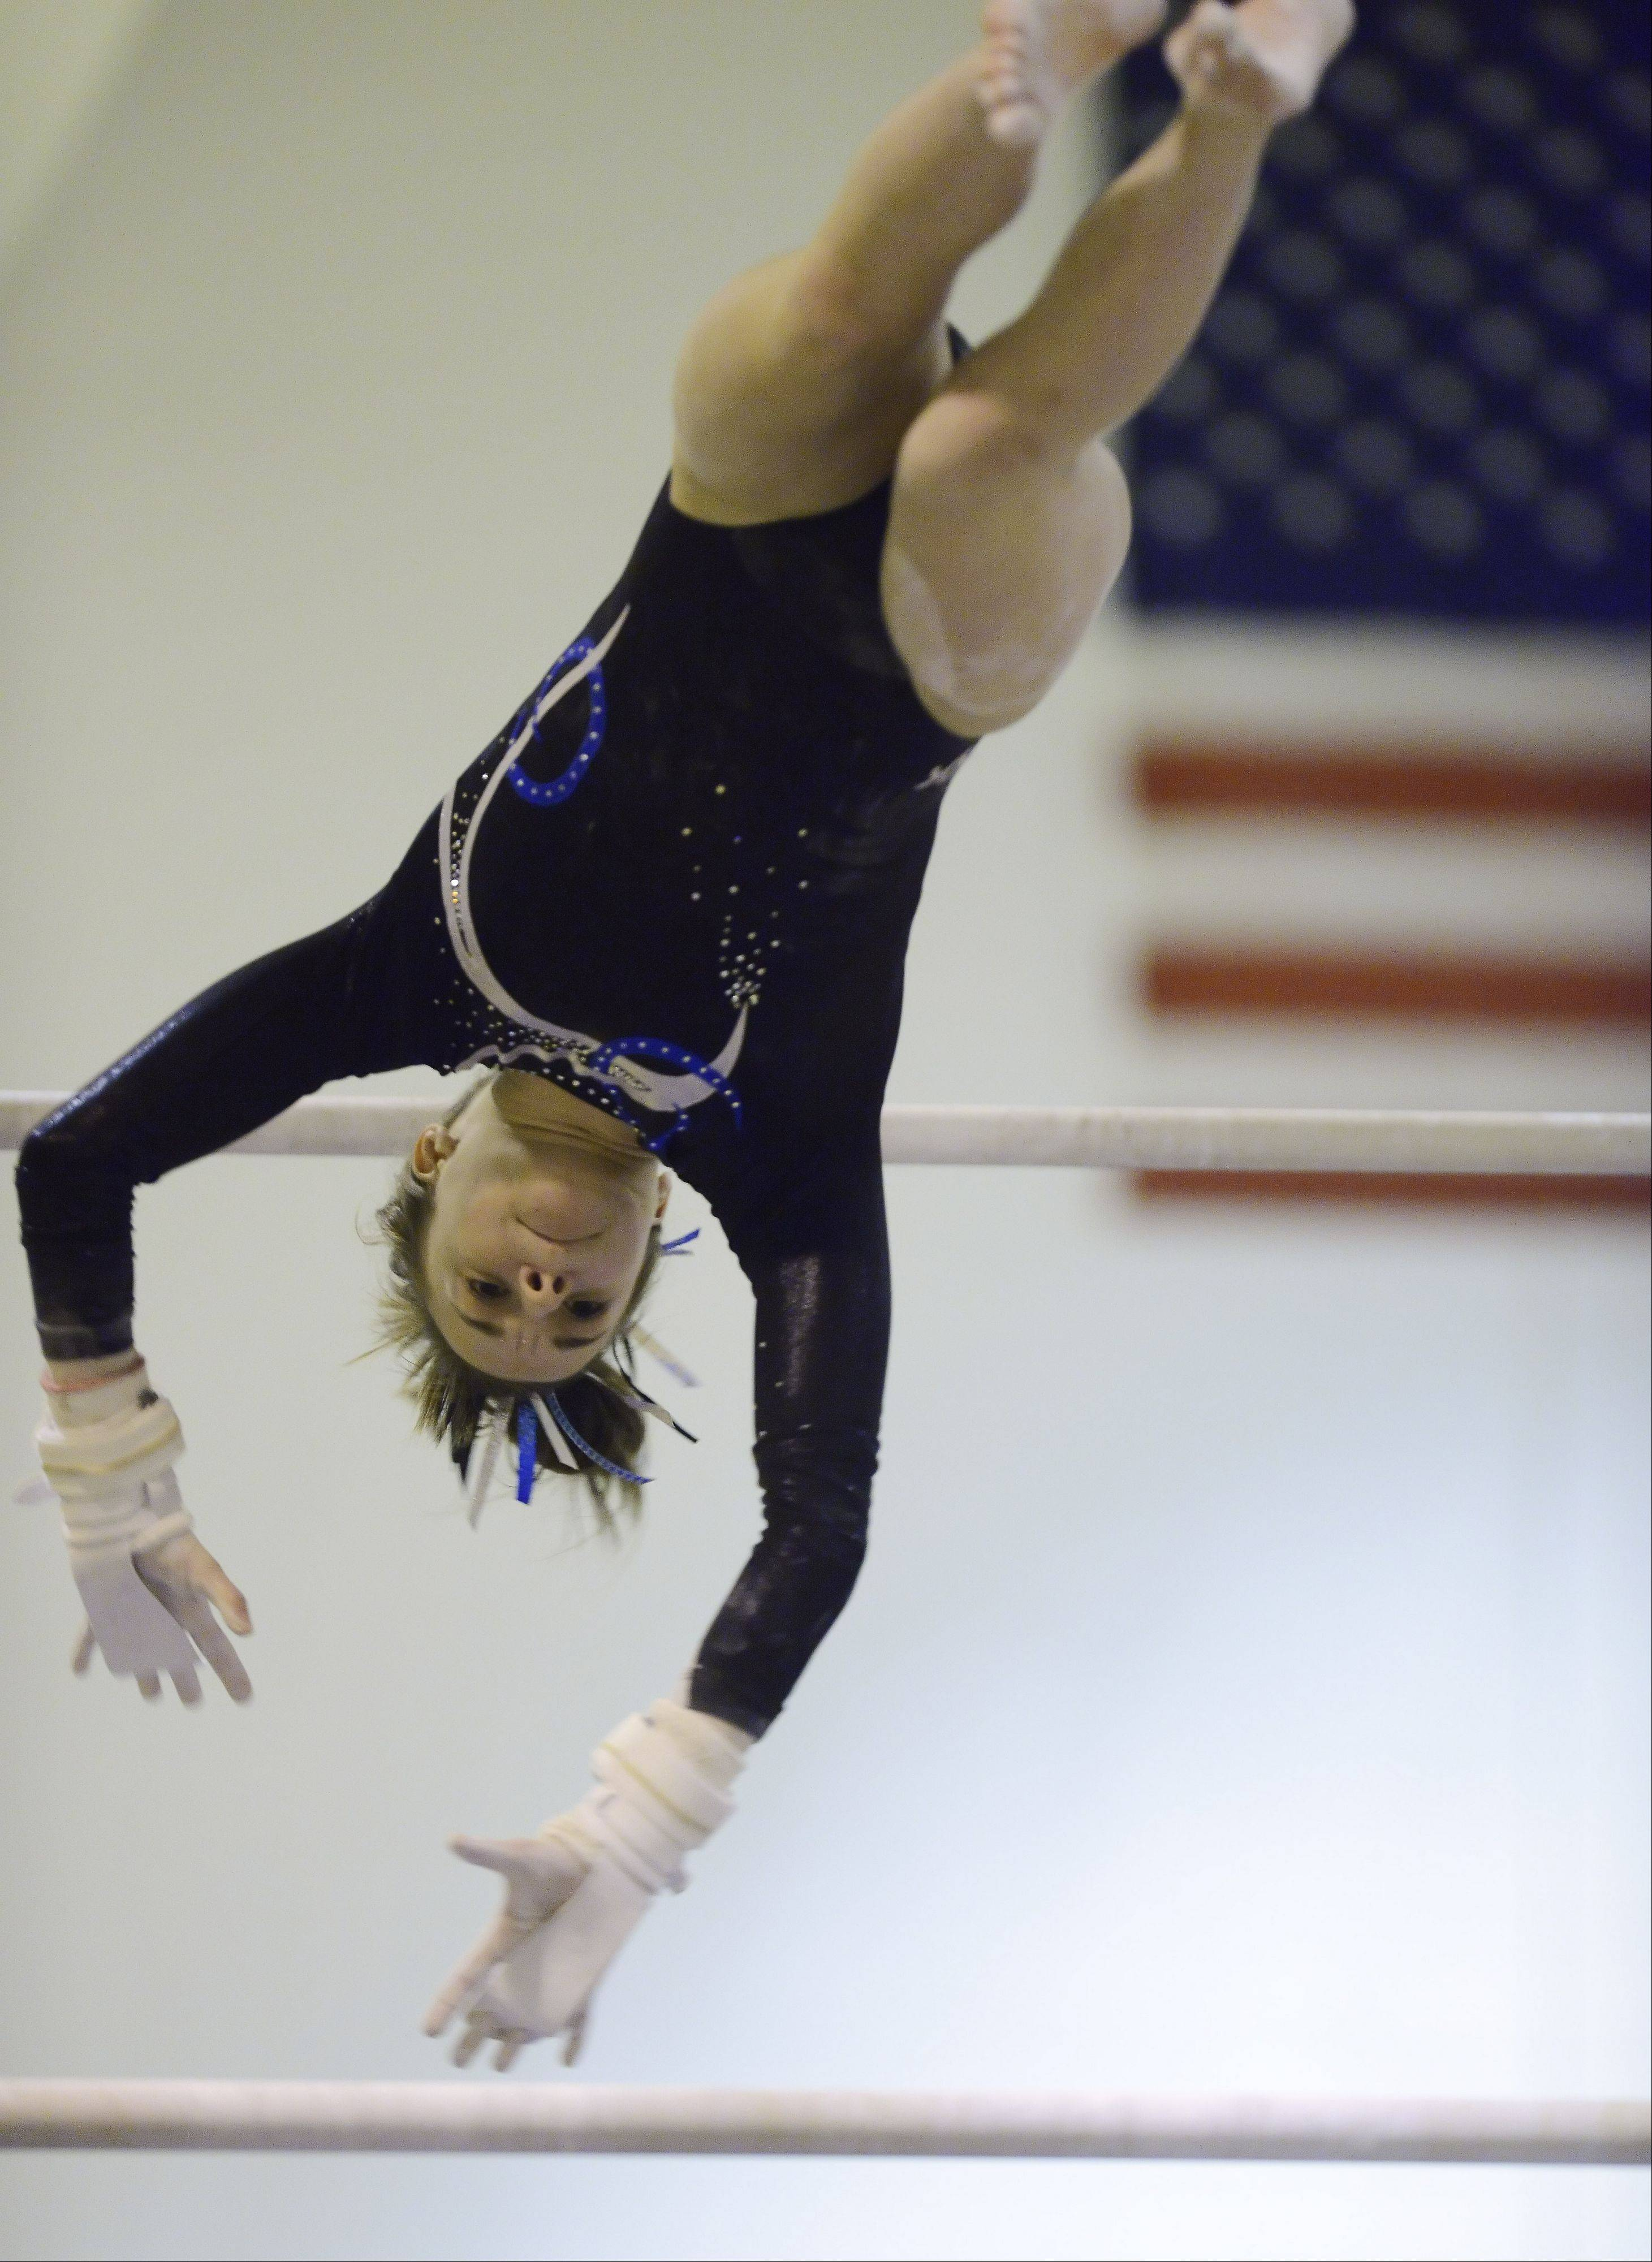 Prospect's Maddie Larock competes on the uneven parallel bars during Wednesday's gymnastics meet with Hersey and Wheeling.